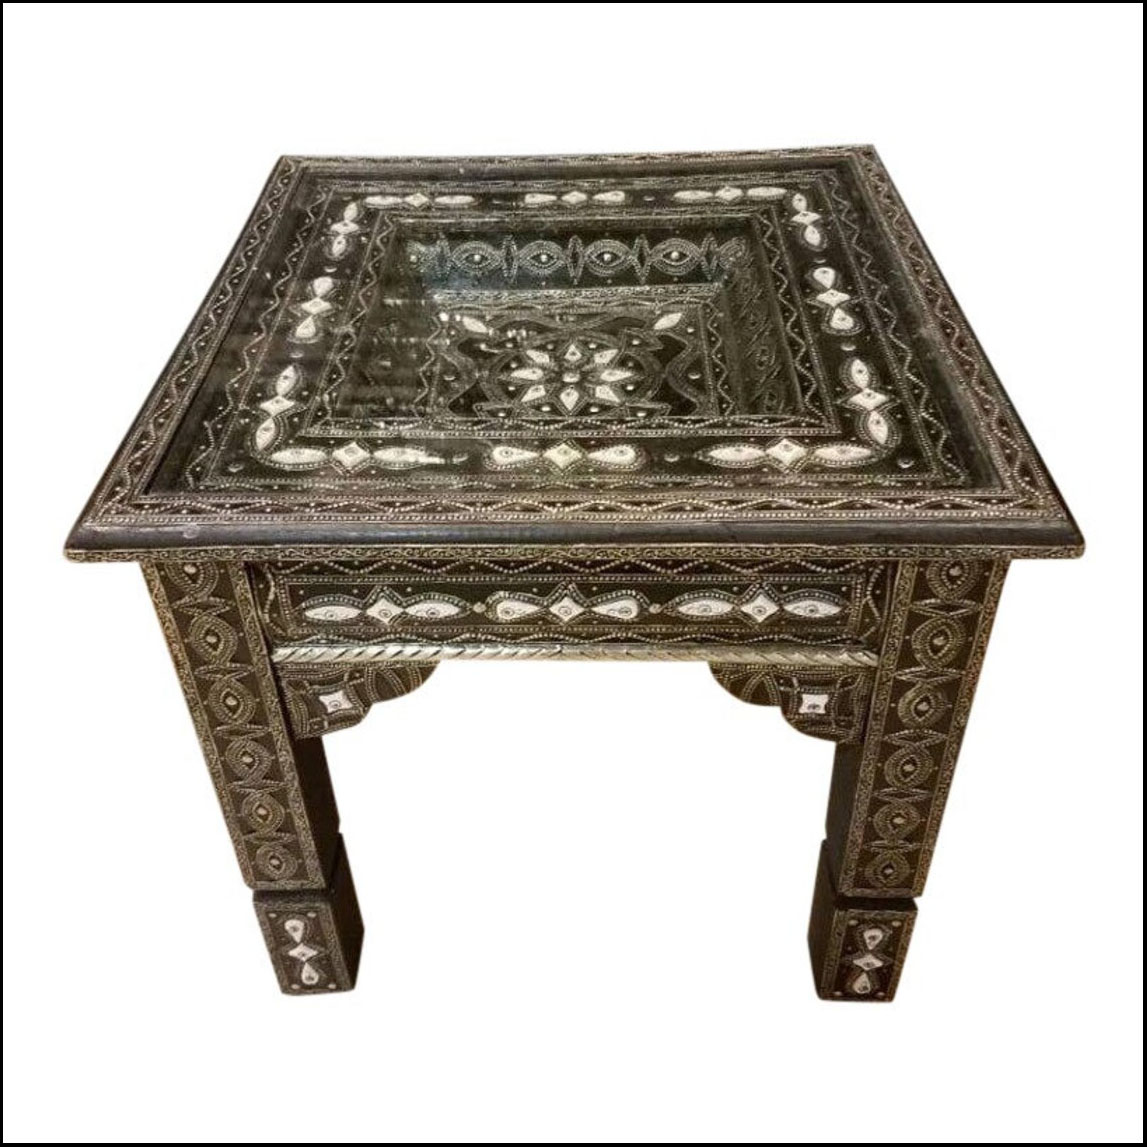 Metal / White Camel Bone Inlaid Moroccan Side Table.